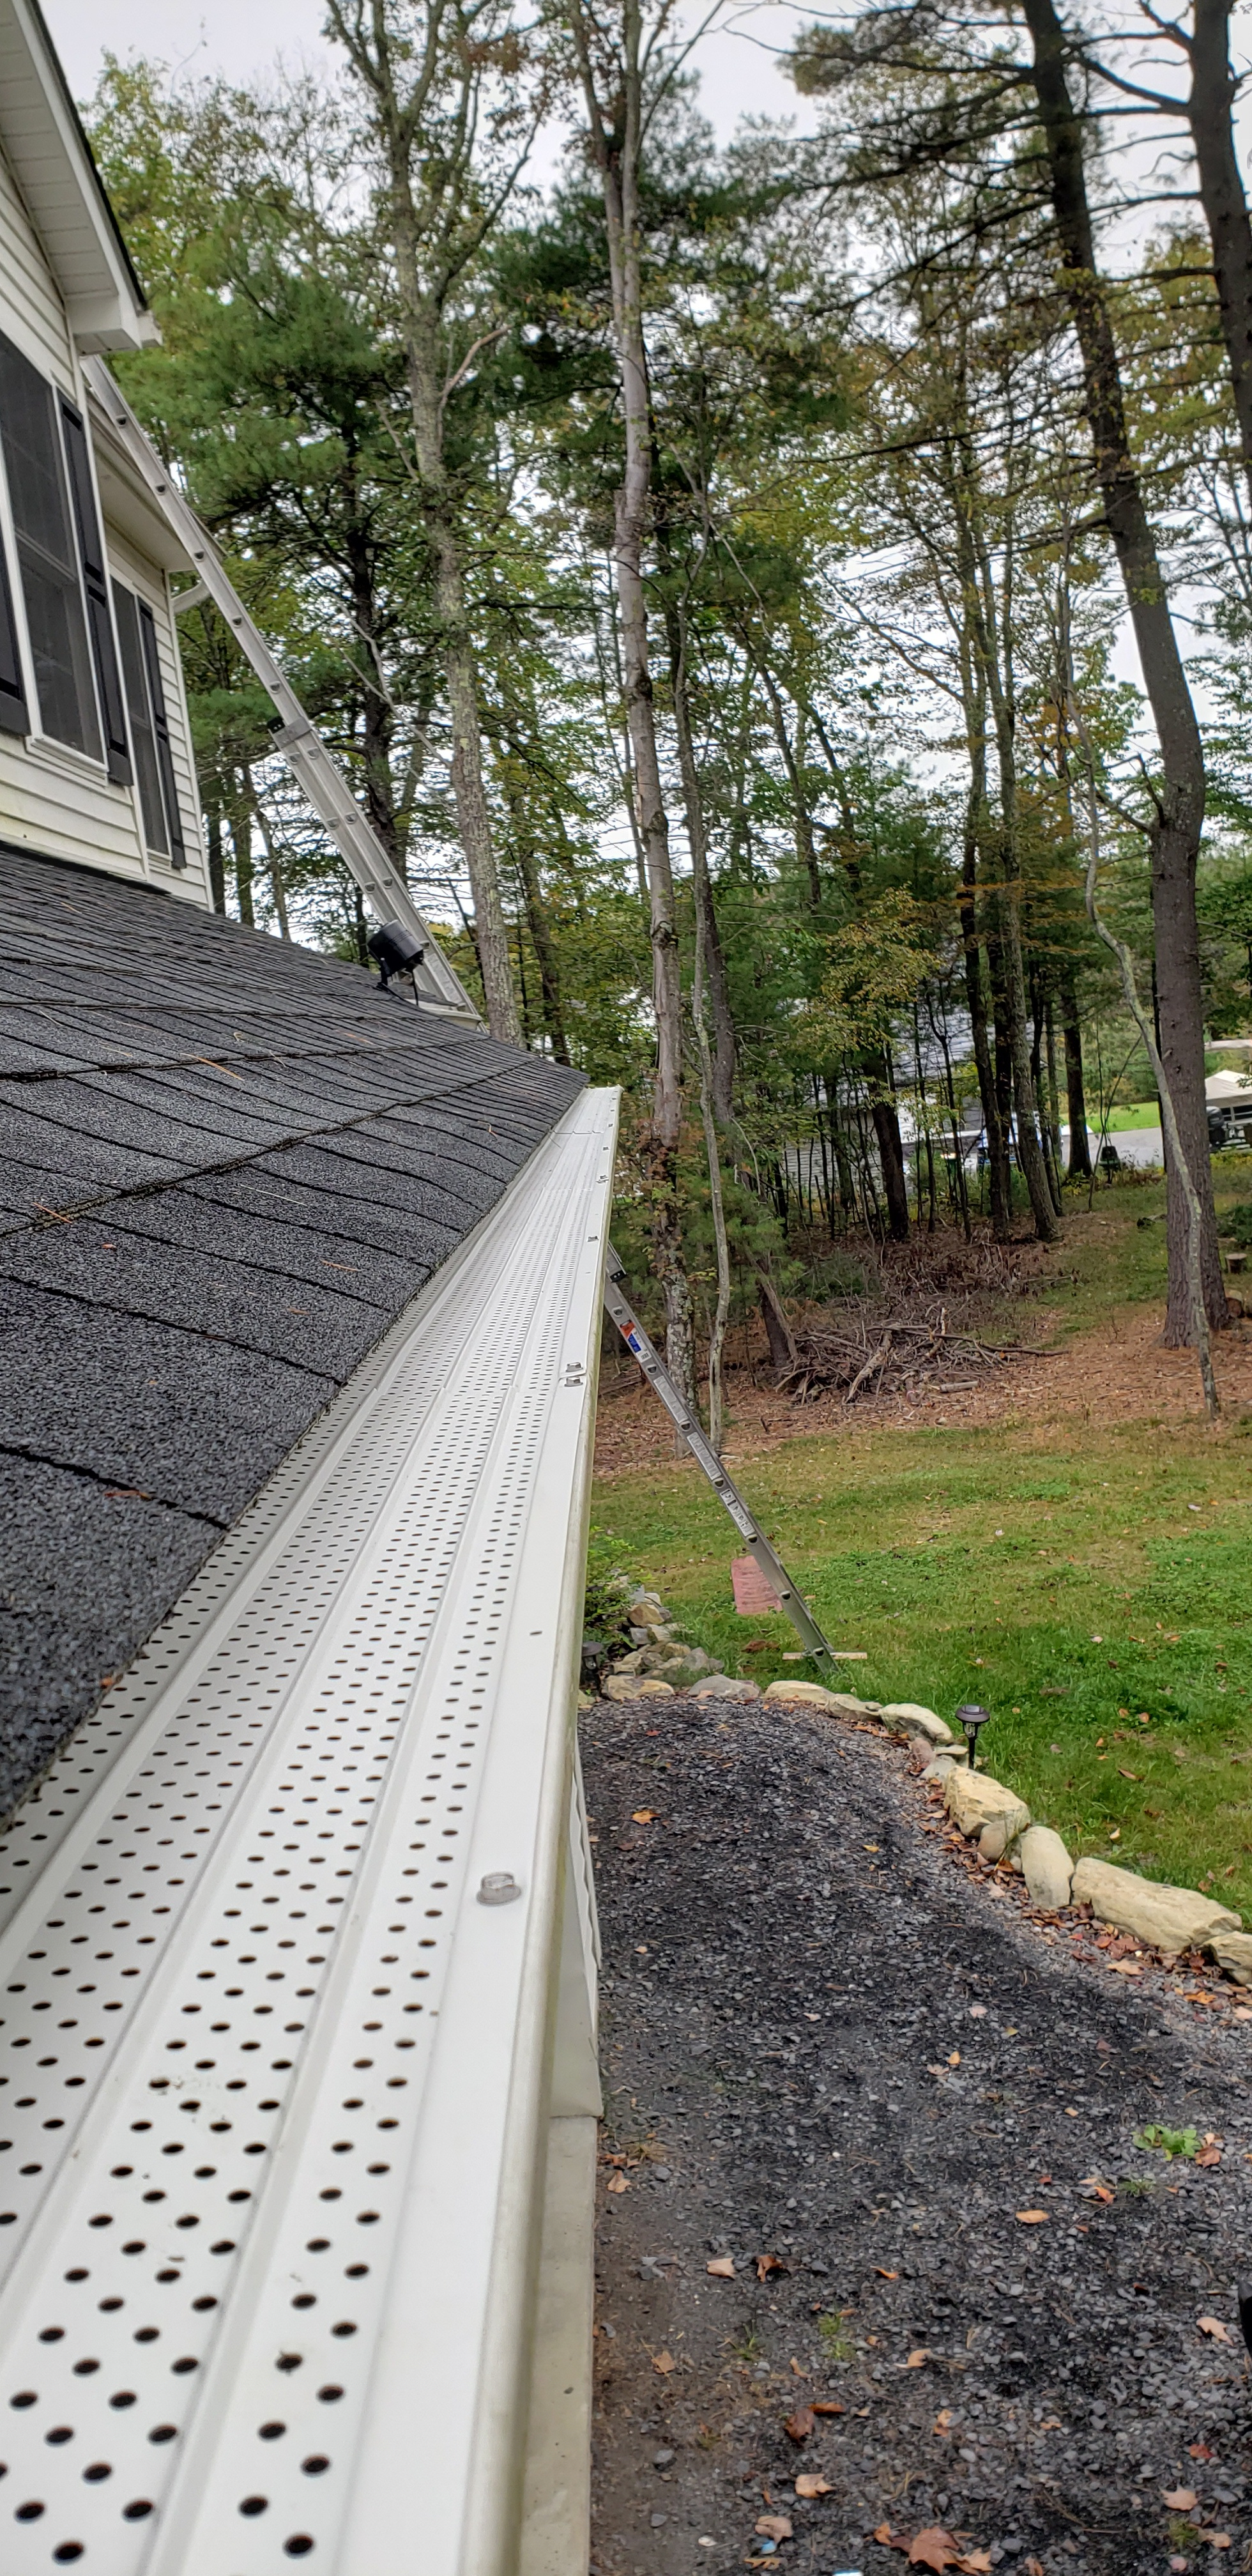 Gutter guard protects your home